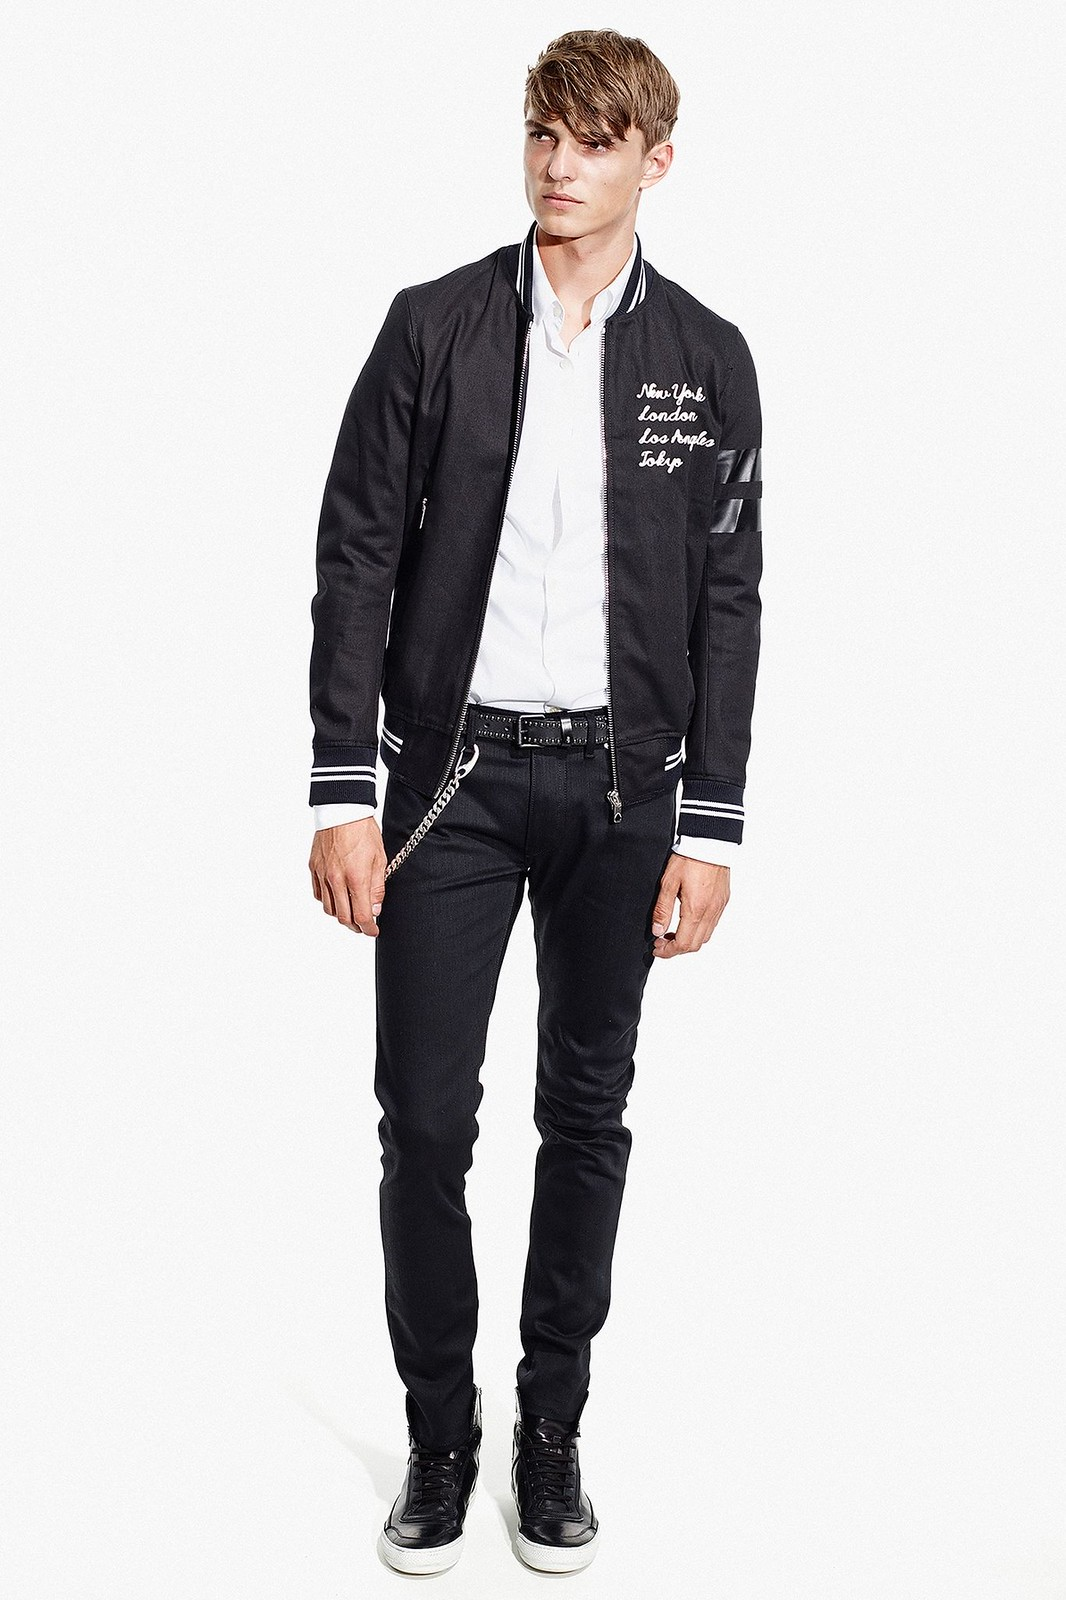 Guerrino Santulliana0004_AW14 DIESEL BLACK GOLD